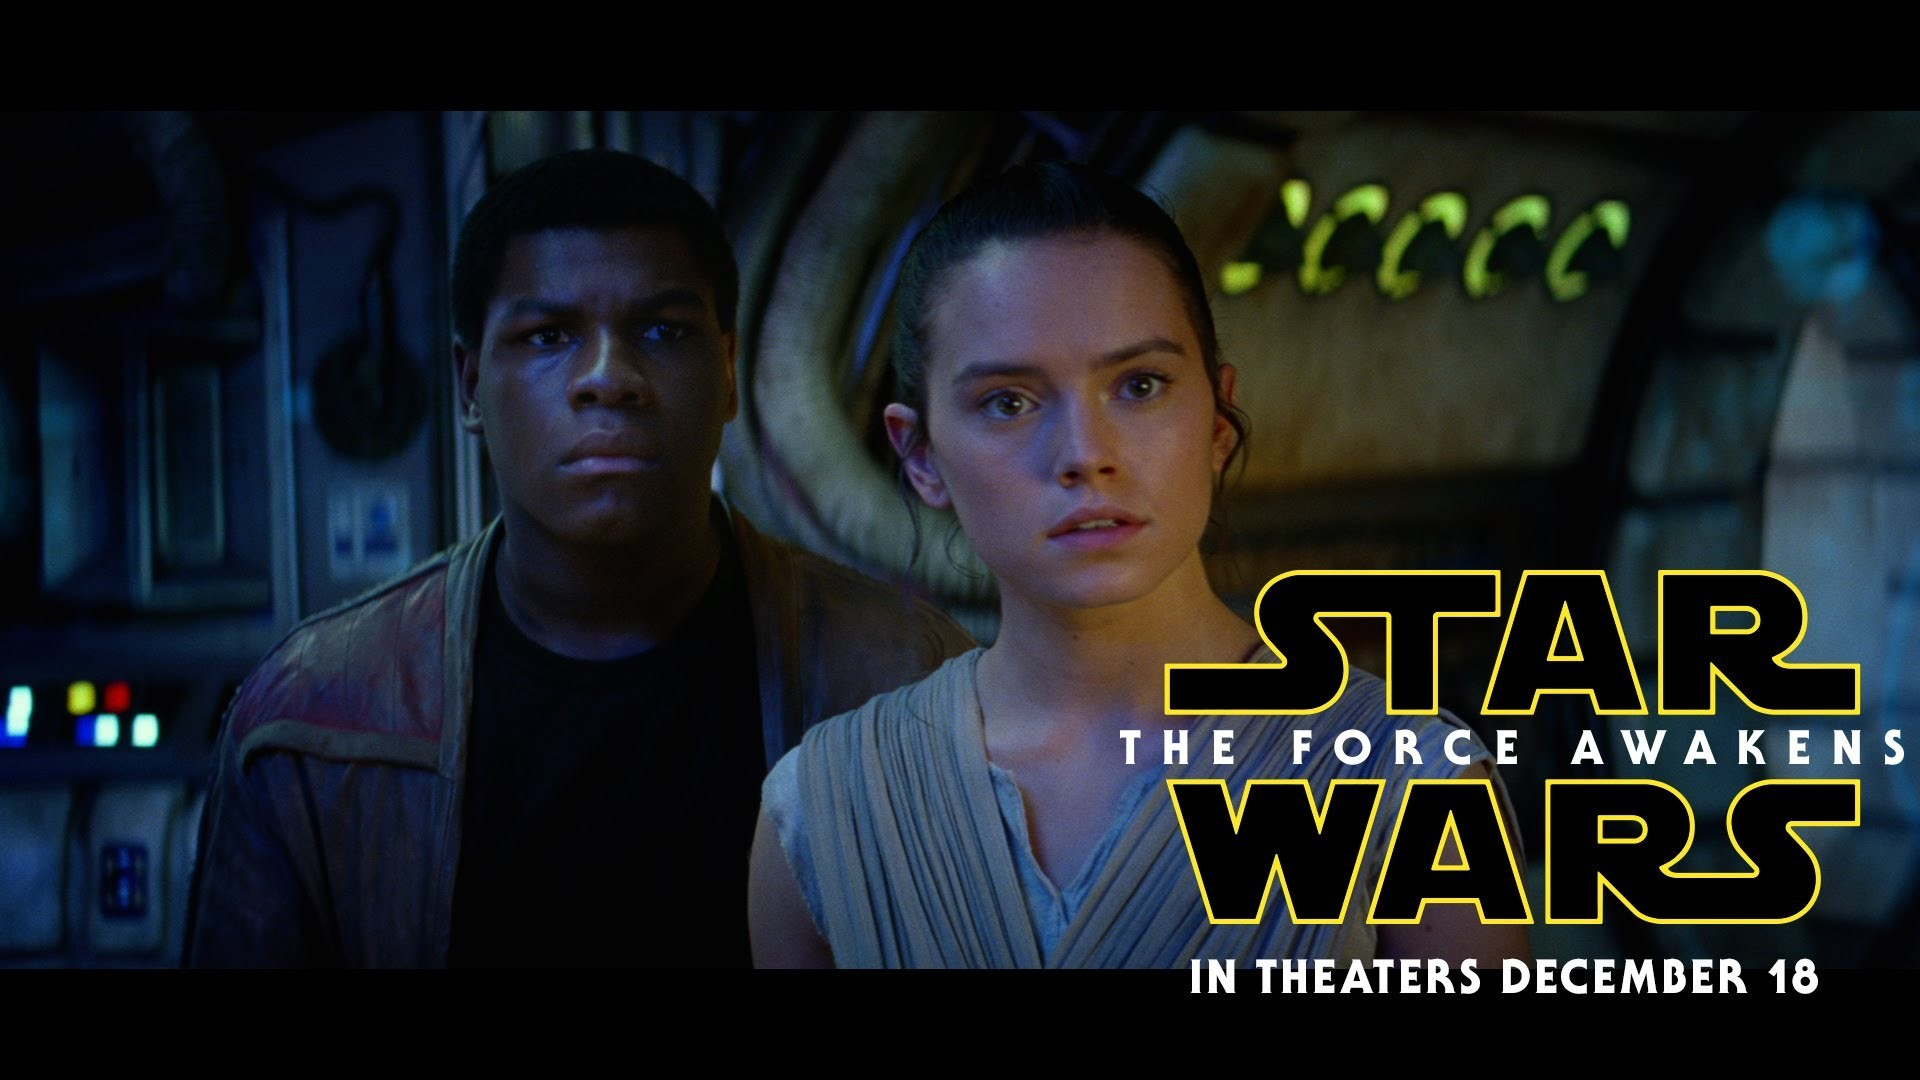 'Star Wars: The Force Awakens' Achieves Highest Single-day Opening in History